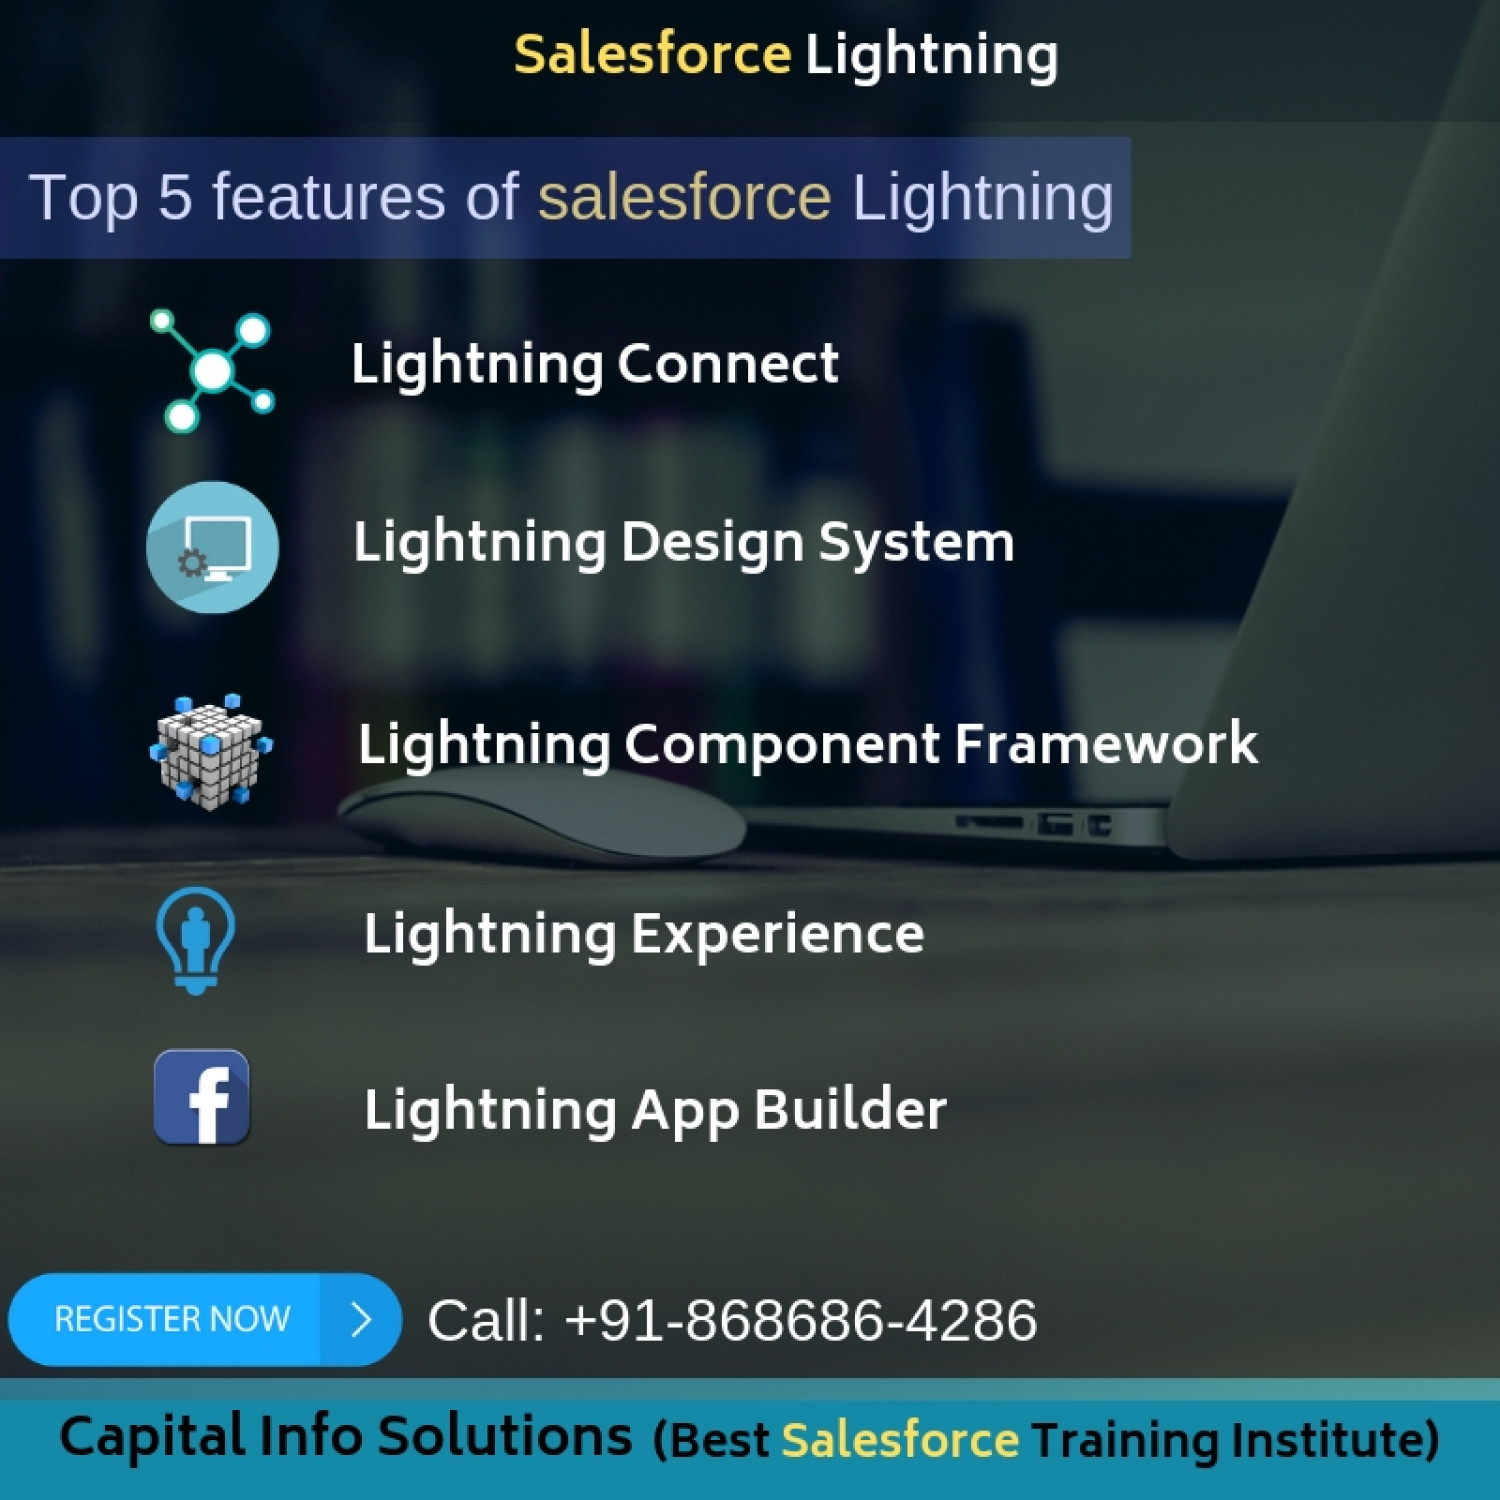 Top 5 features of salesforce lightning Infographic